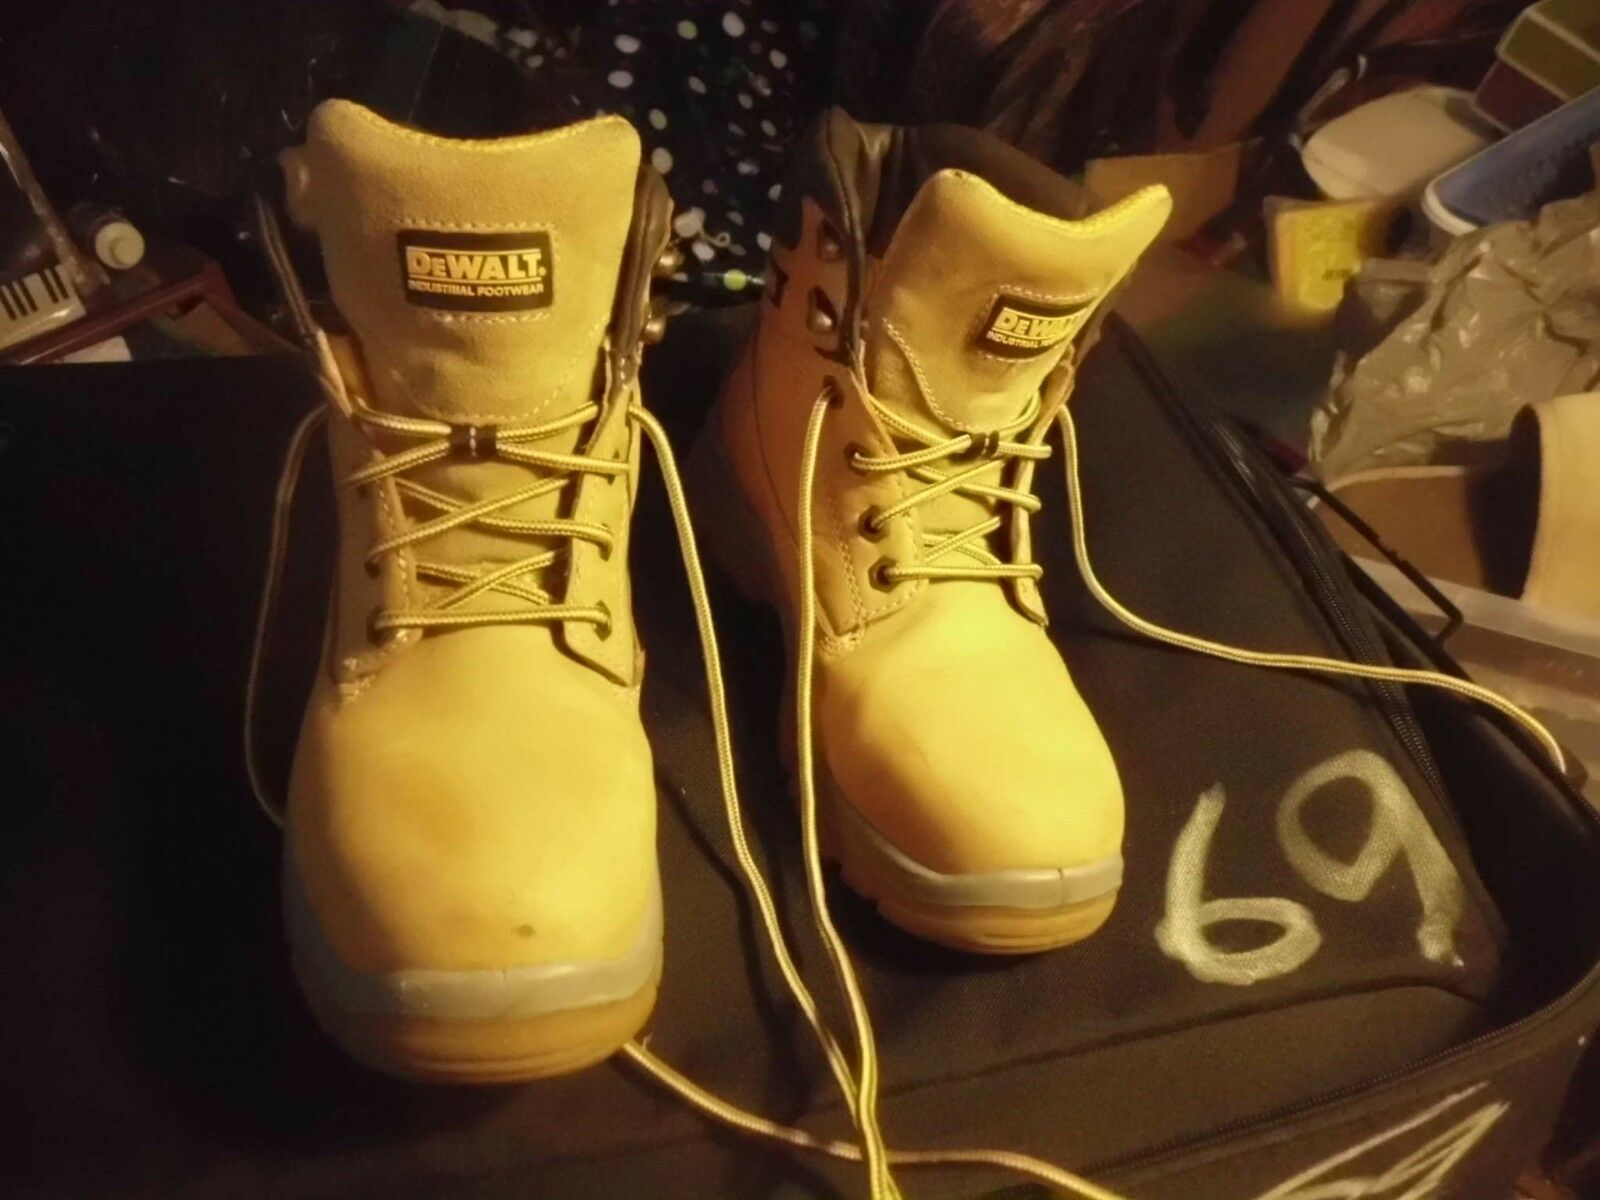 DE WALT STEEL TOE BOOTS SIZE 6 FREE POST